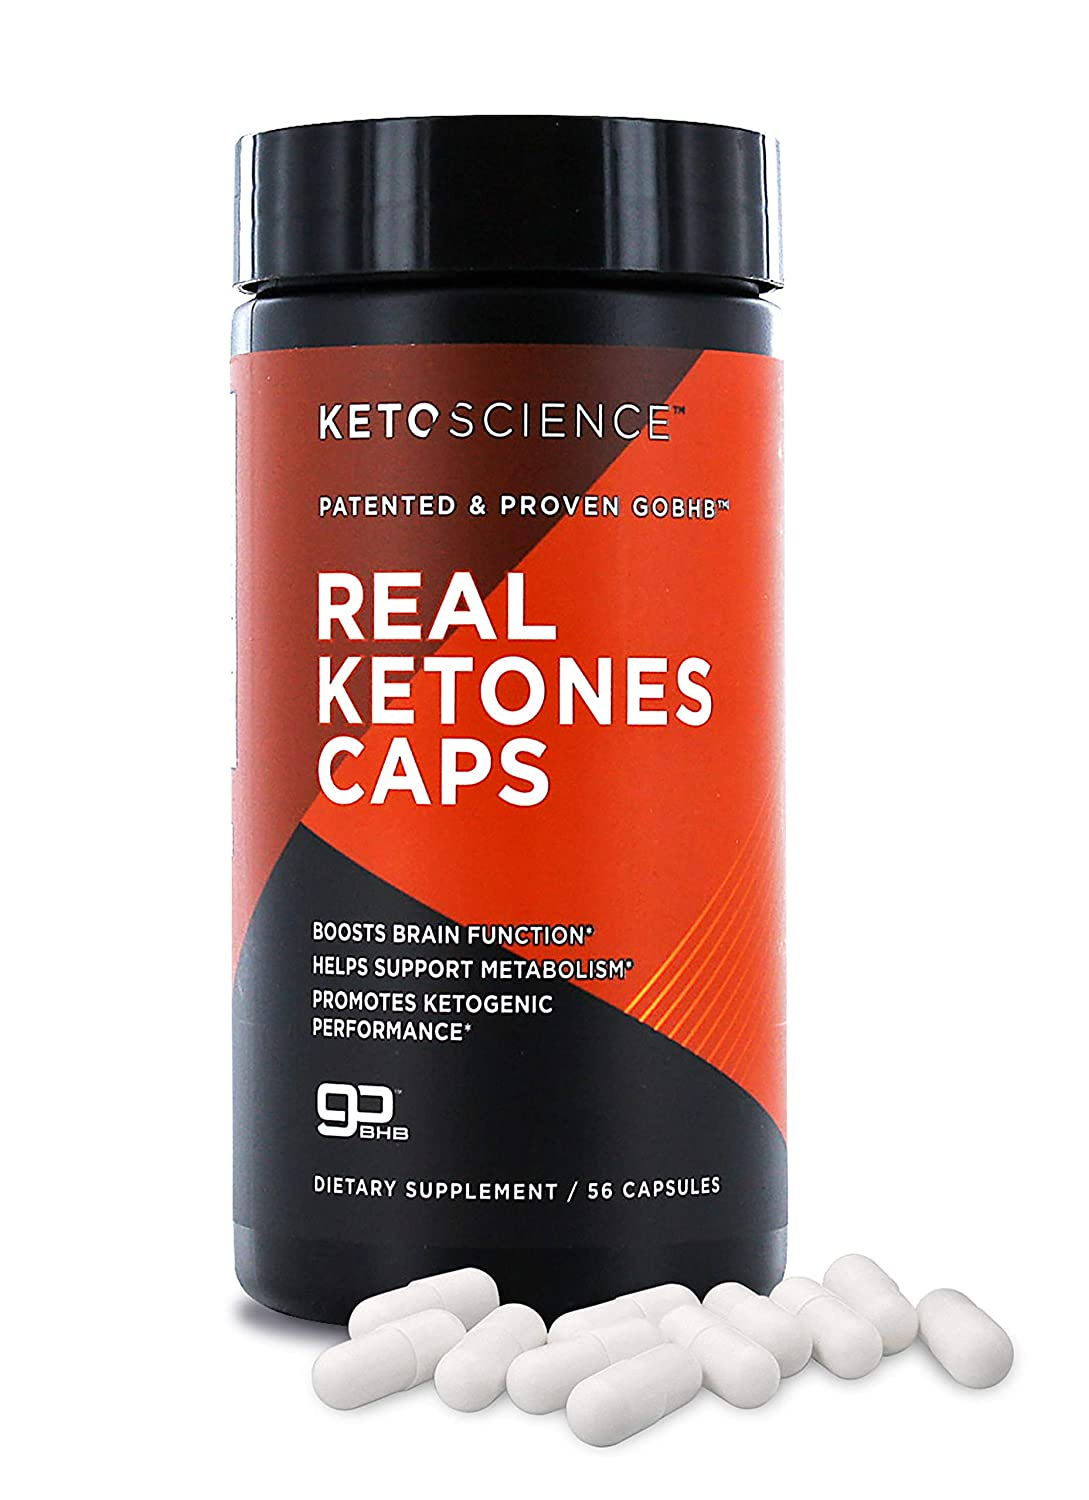 Keto Science Real Ketones Caps Dietary Supplement Supports